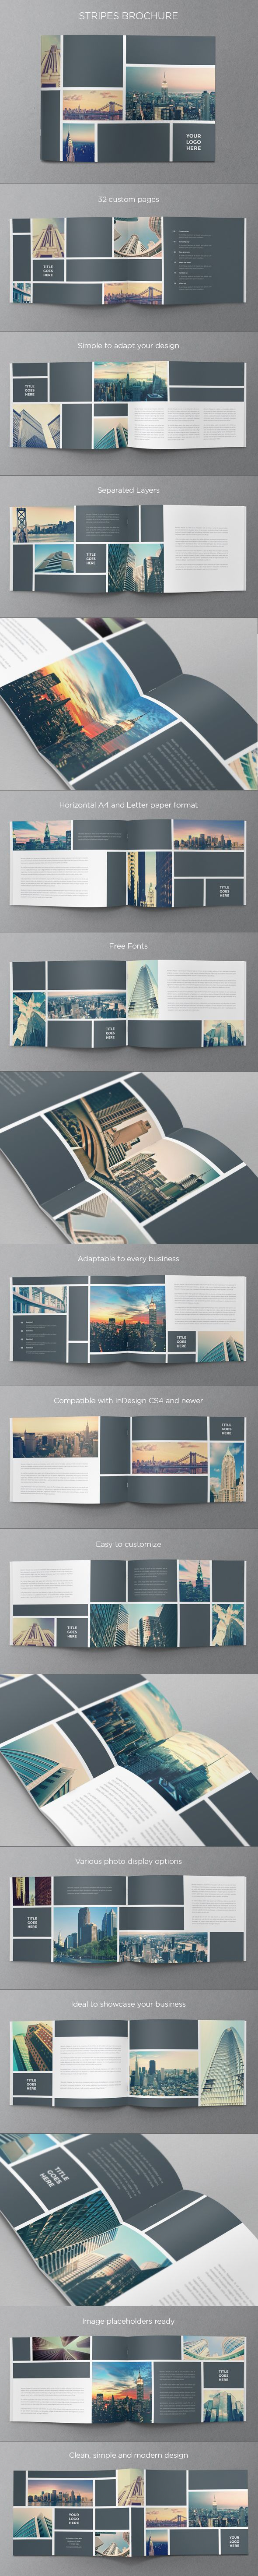 Real Estate Stripes Brochure. Download here: http://graphicriver.net/item/real-estate-stripes-brochure/6058277 #design #brochure